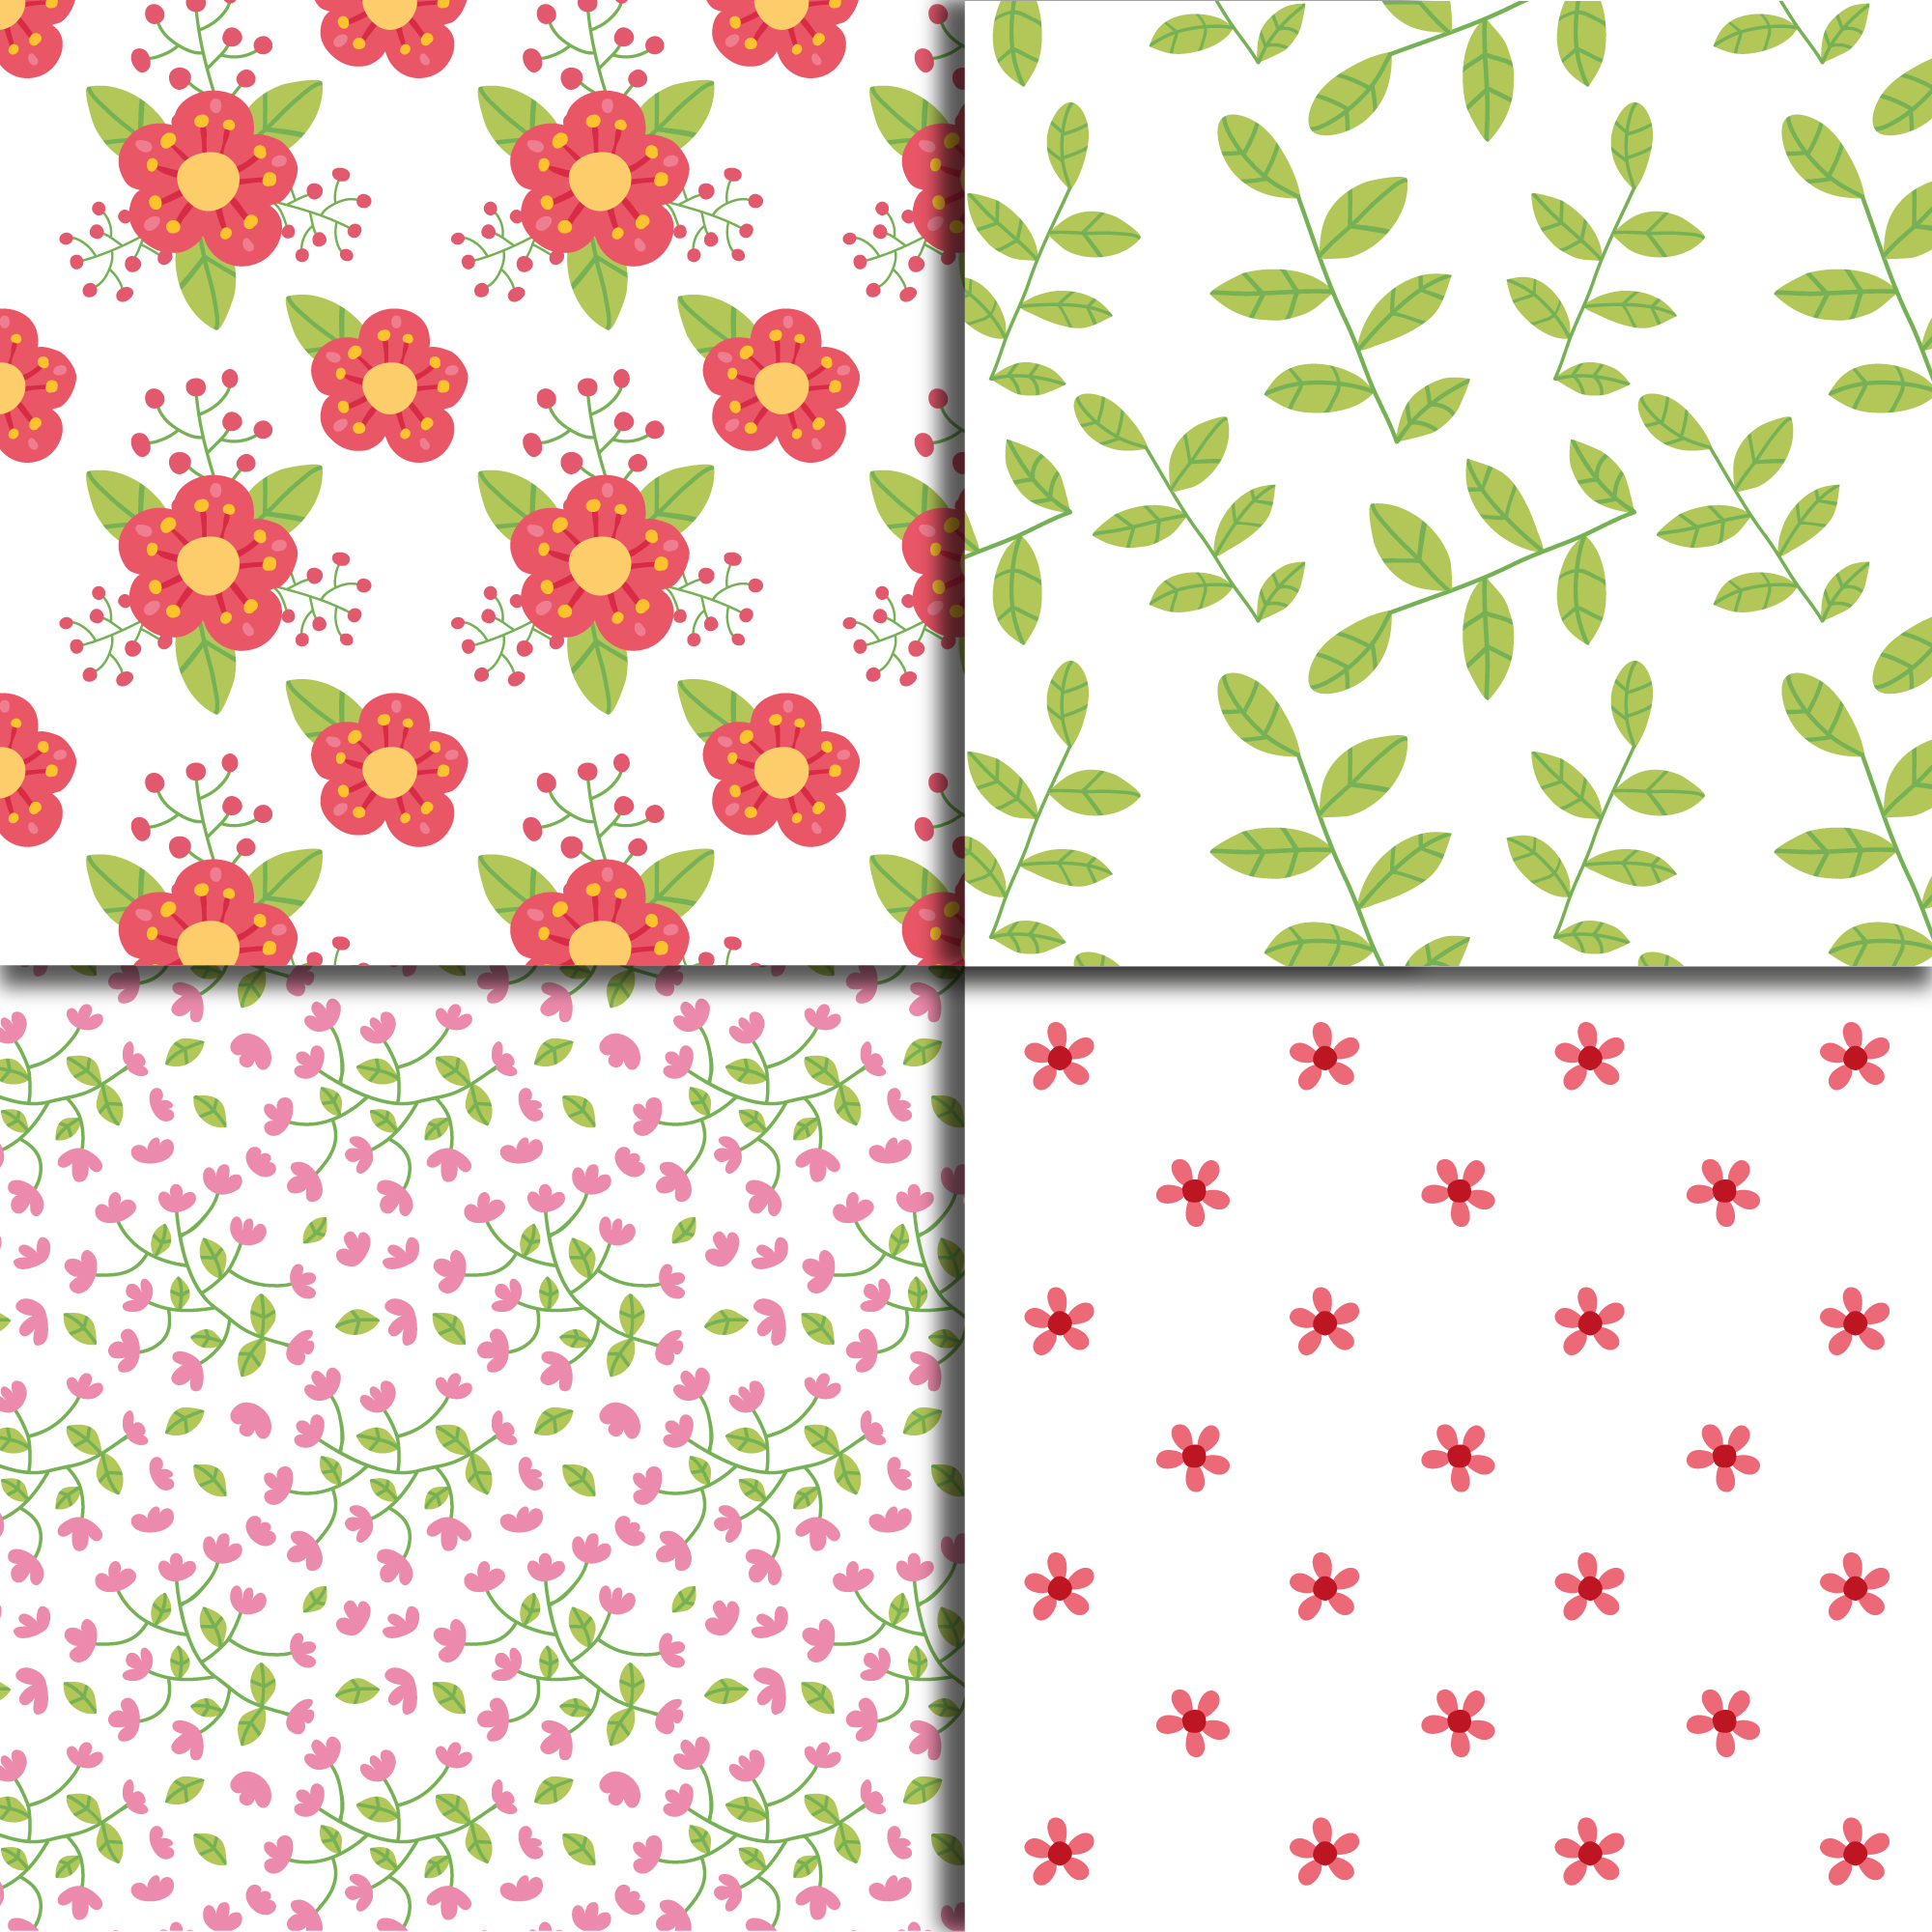 Floral pattern on white background collection